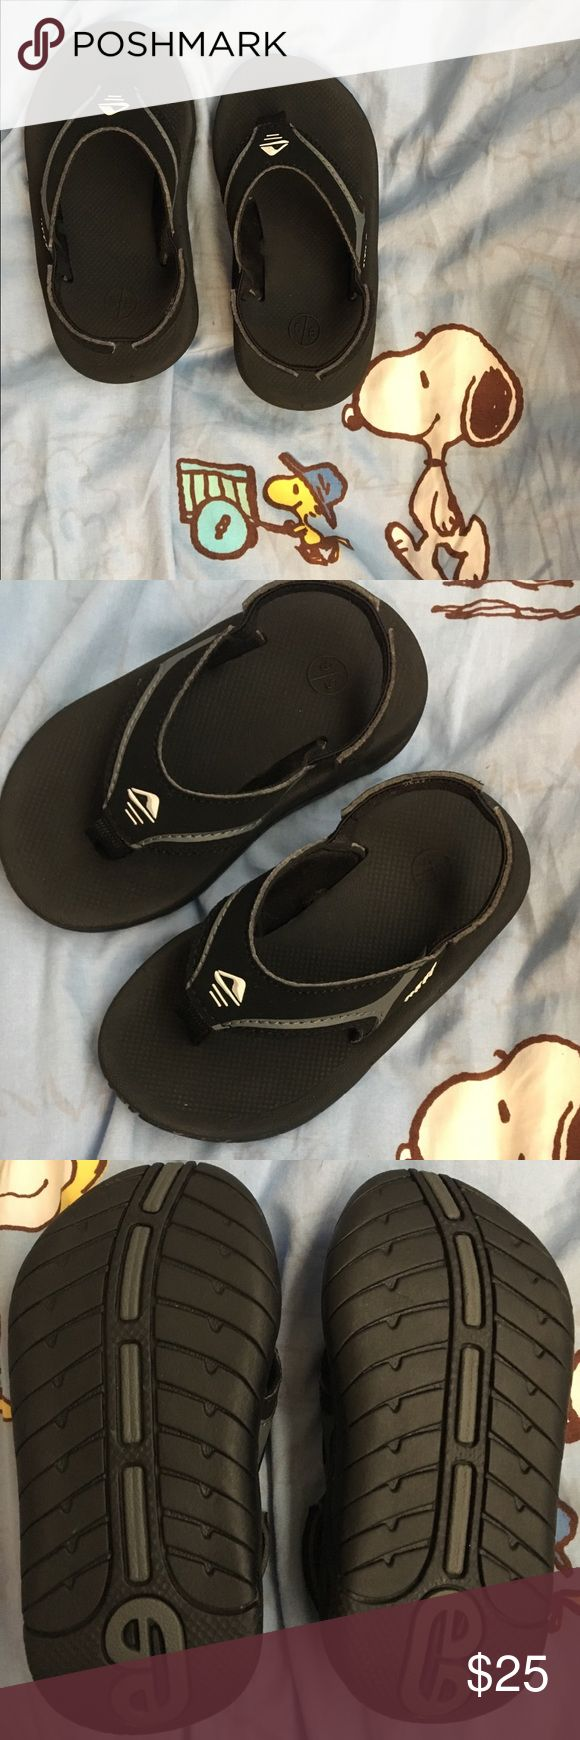 Baby toddler boy girl reef flip flop sandals CUTE small Reef brand sandals. Never worn. Brand new. Bought 2 pairs for my son online not knowing his size and well, this one is too big. Size 5/6. Listed as 5.5 because there is no option for 5/6. Shoes Sandals & Flip Flops